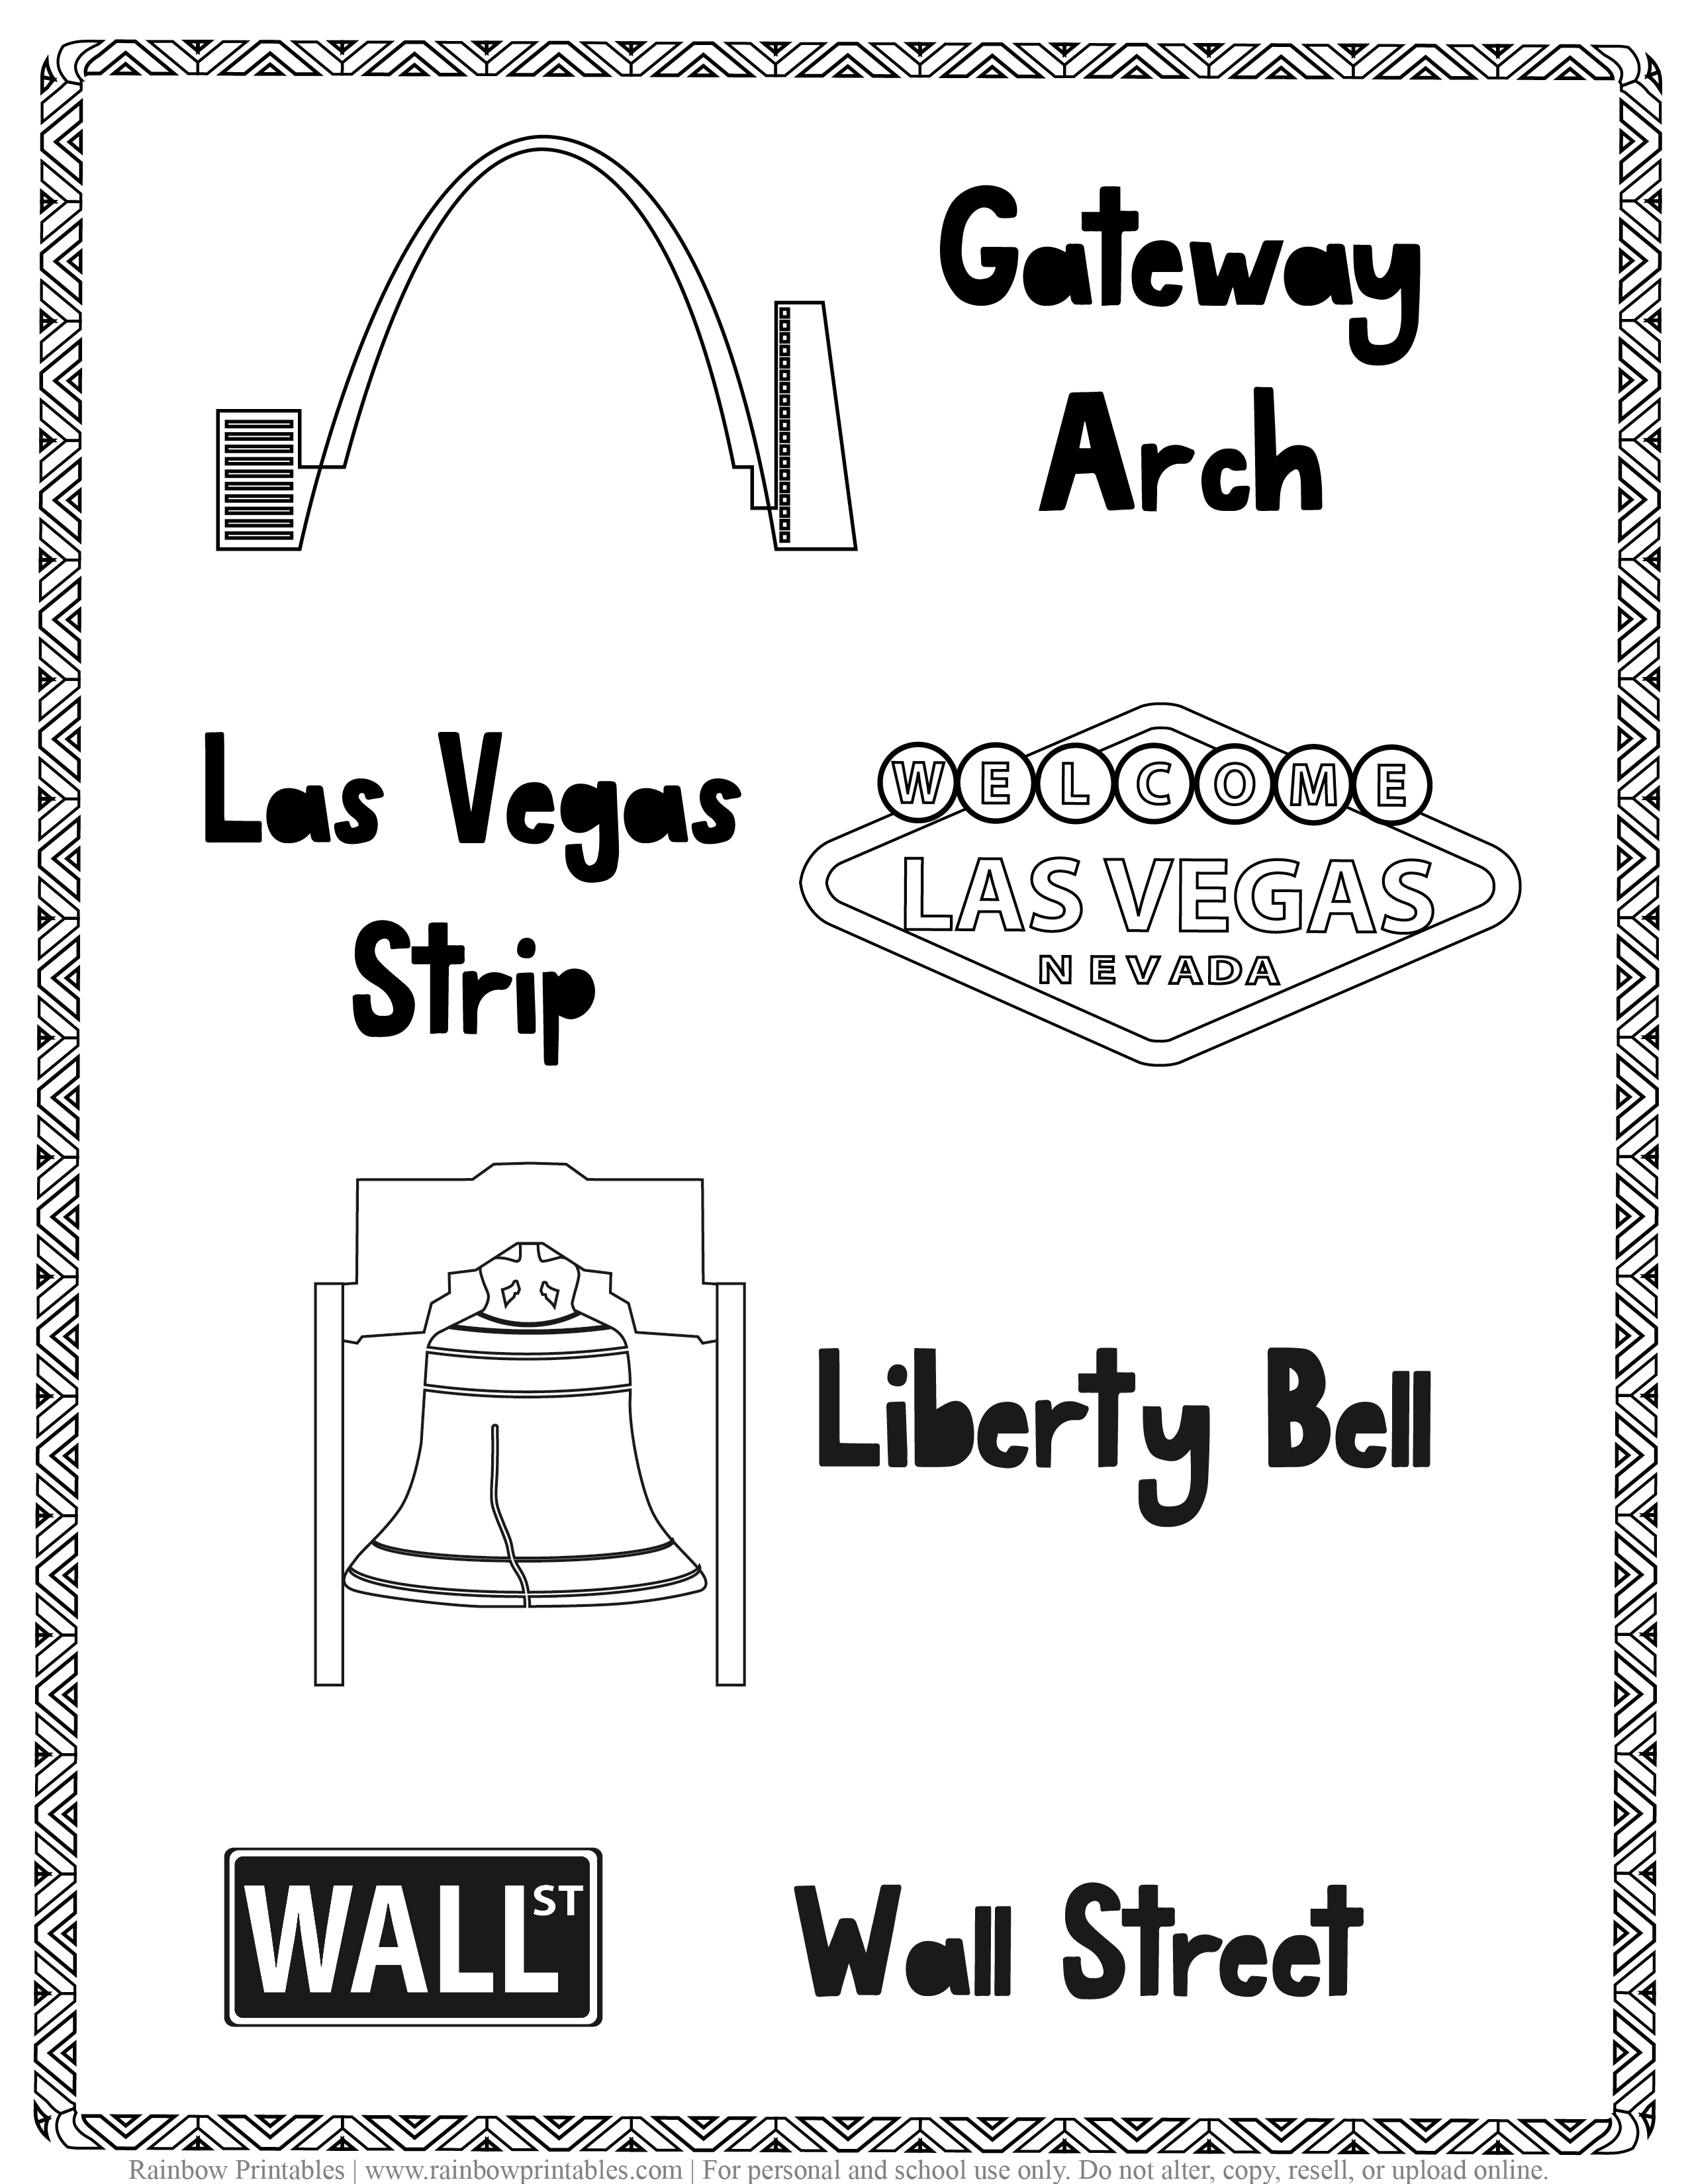 American Famous Landmarks Worksheet Geography Quiz Kids Patriotic July 4th Independence Day Printables for Children, Toddlers, America Coloring Pages, Activity (3)